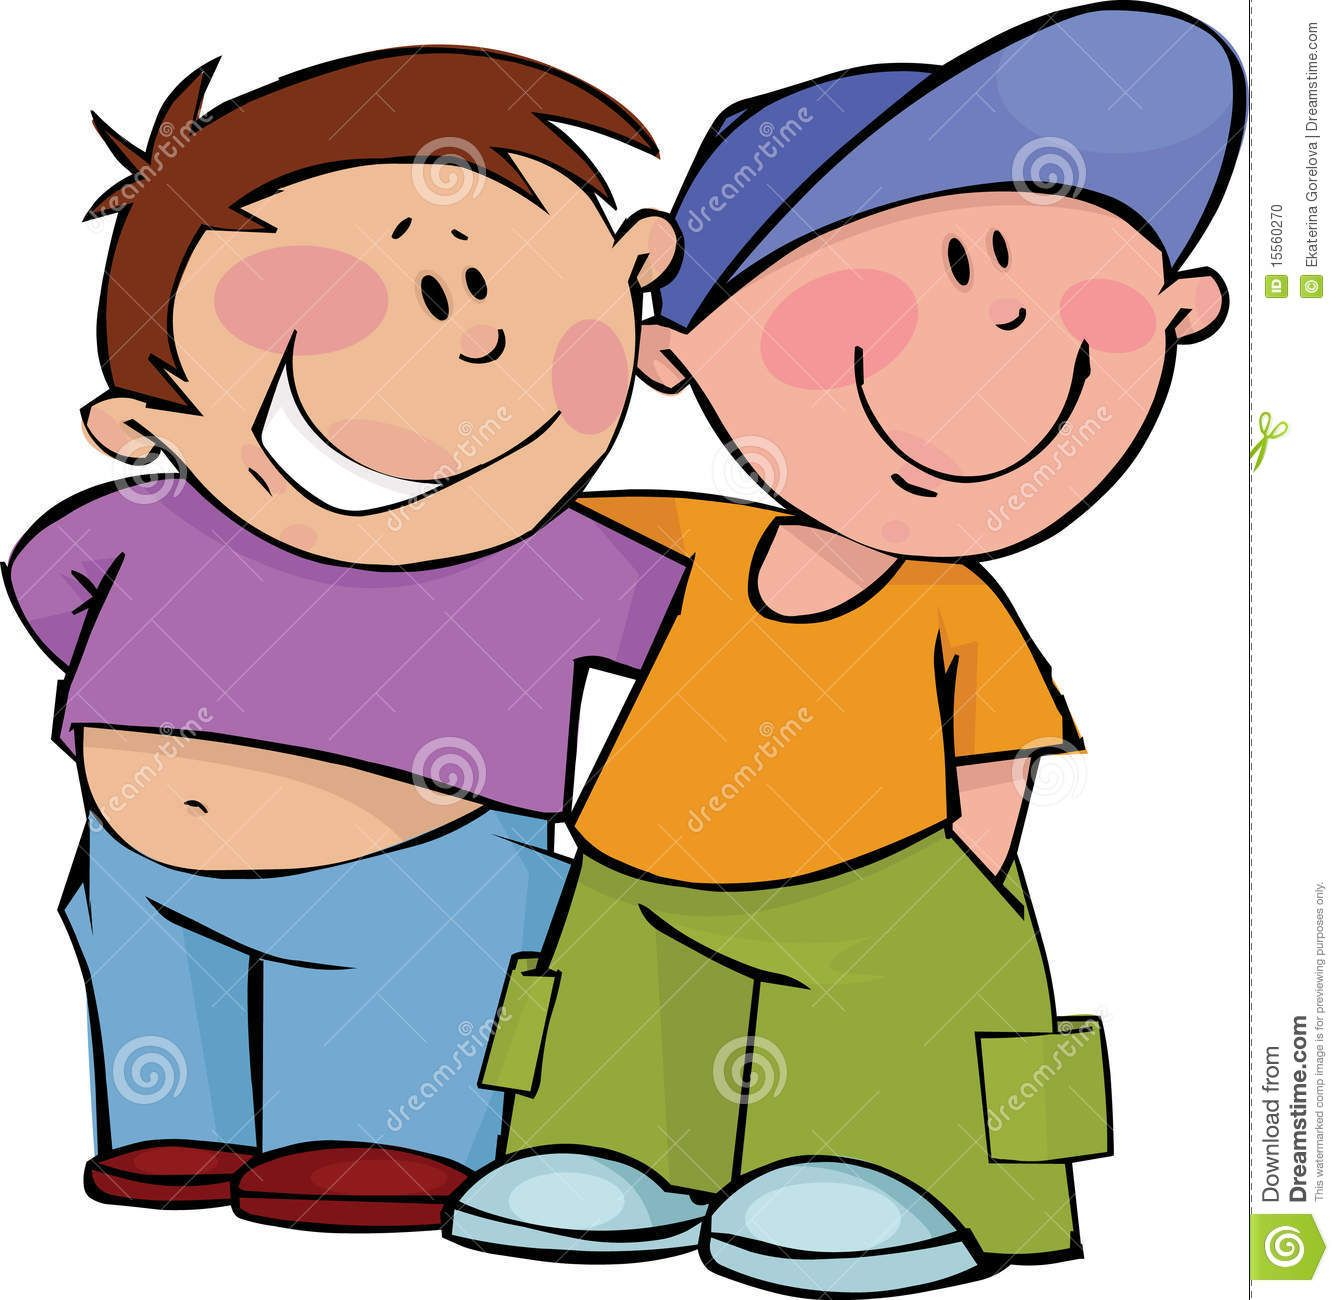 clipart friends two funny boys in a friendly hug more clip rh pinterest com clip art of friends cussing clipart of friends holding hands